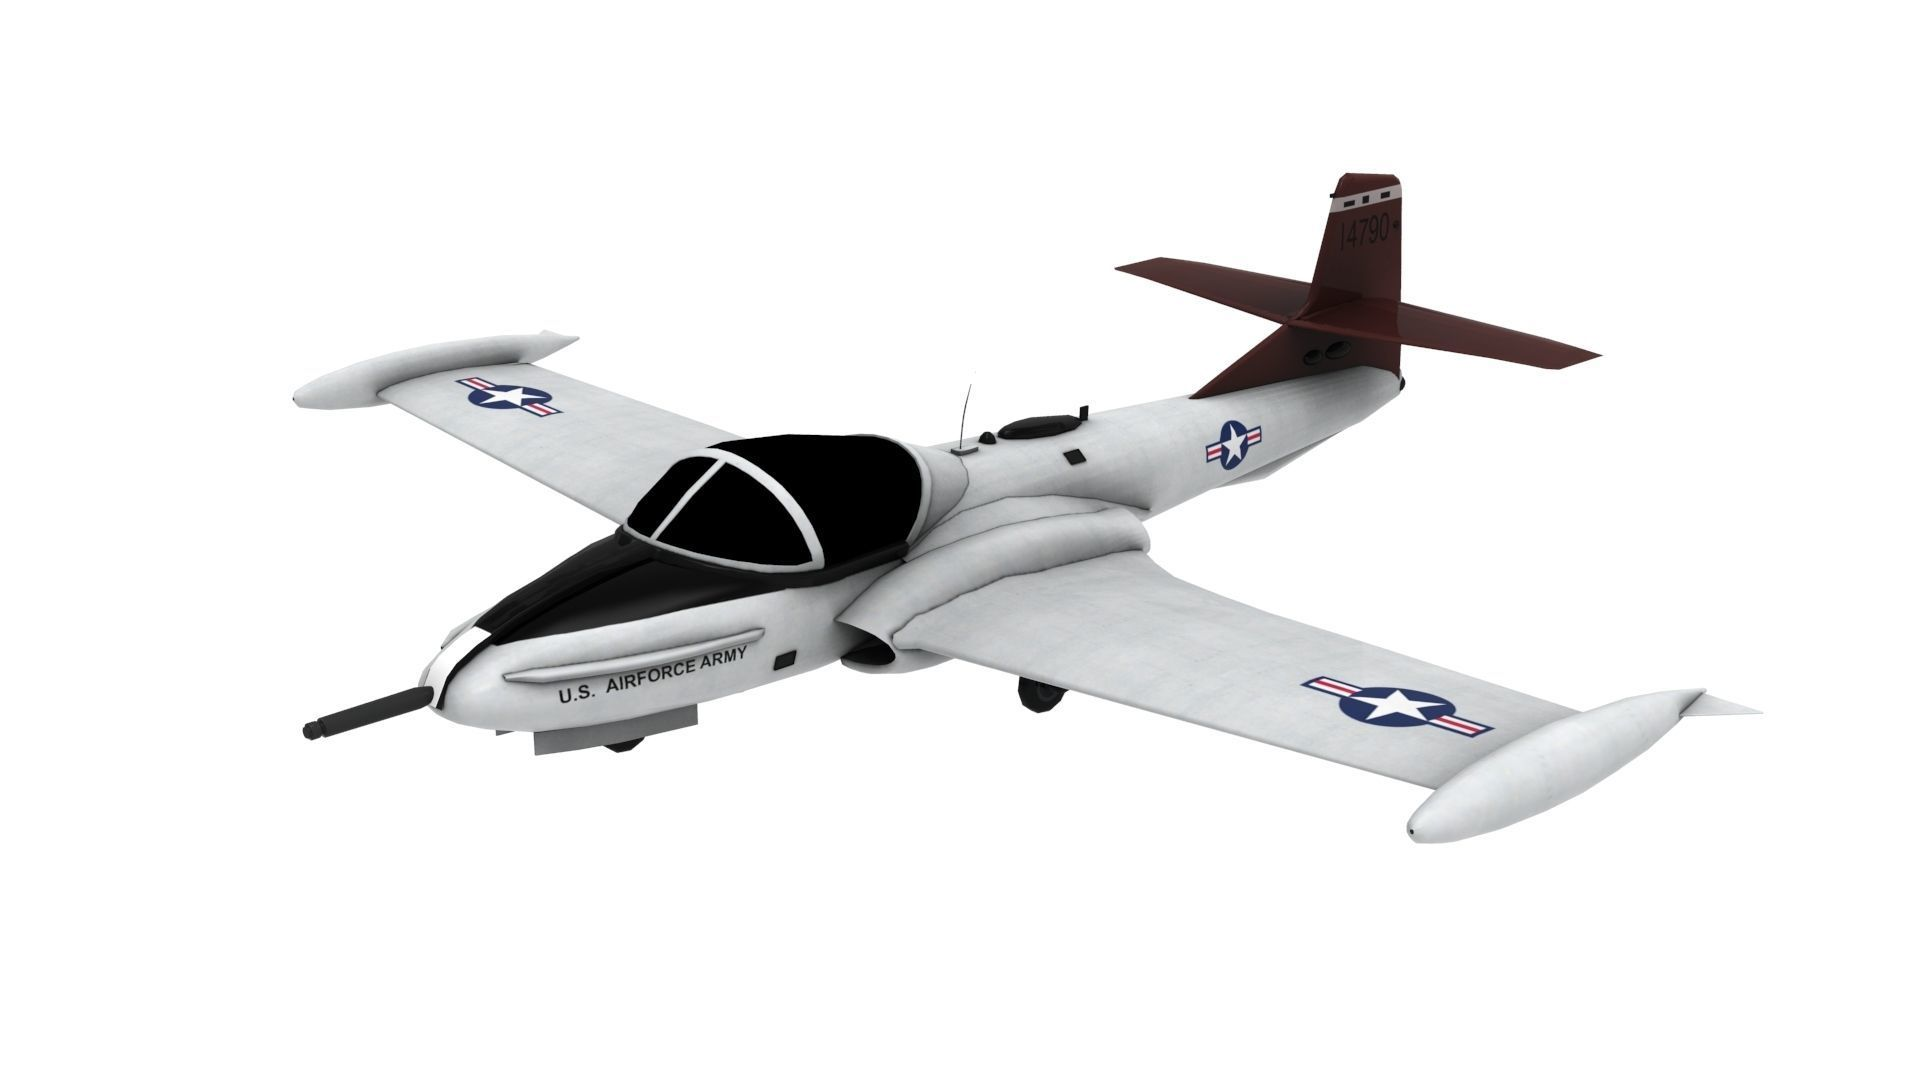 Lowpoly A-37 Aircraft Model